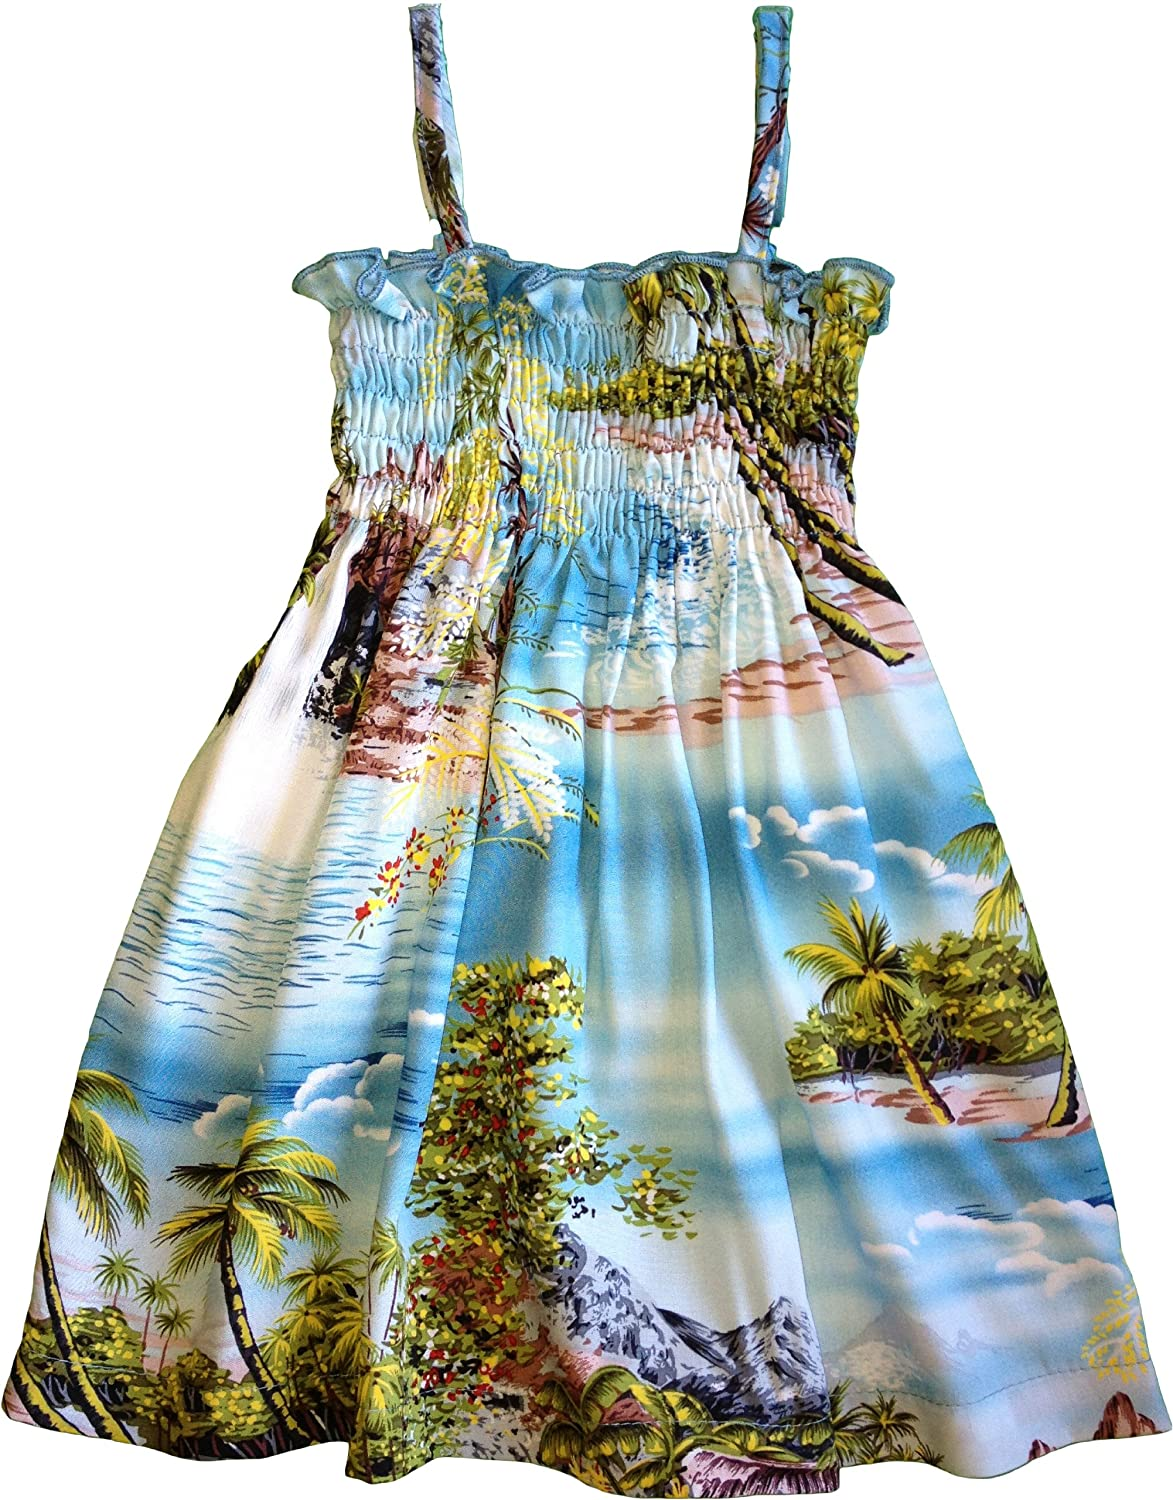 RJC Baby Girls Paradise Island Surf Elastic Tube Top Sundress